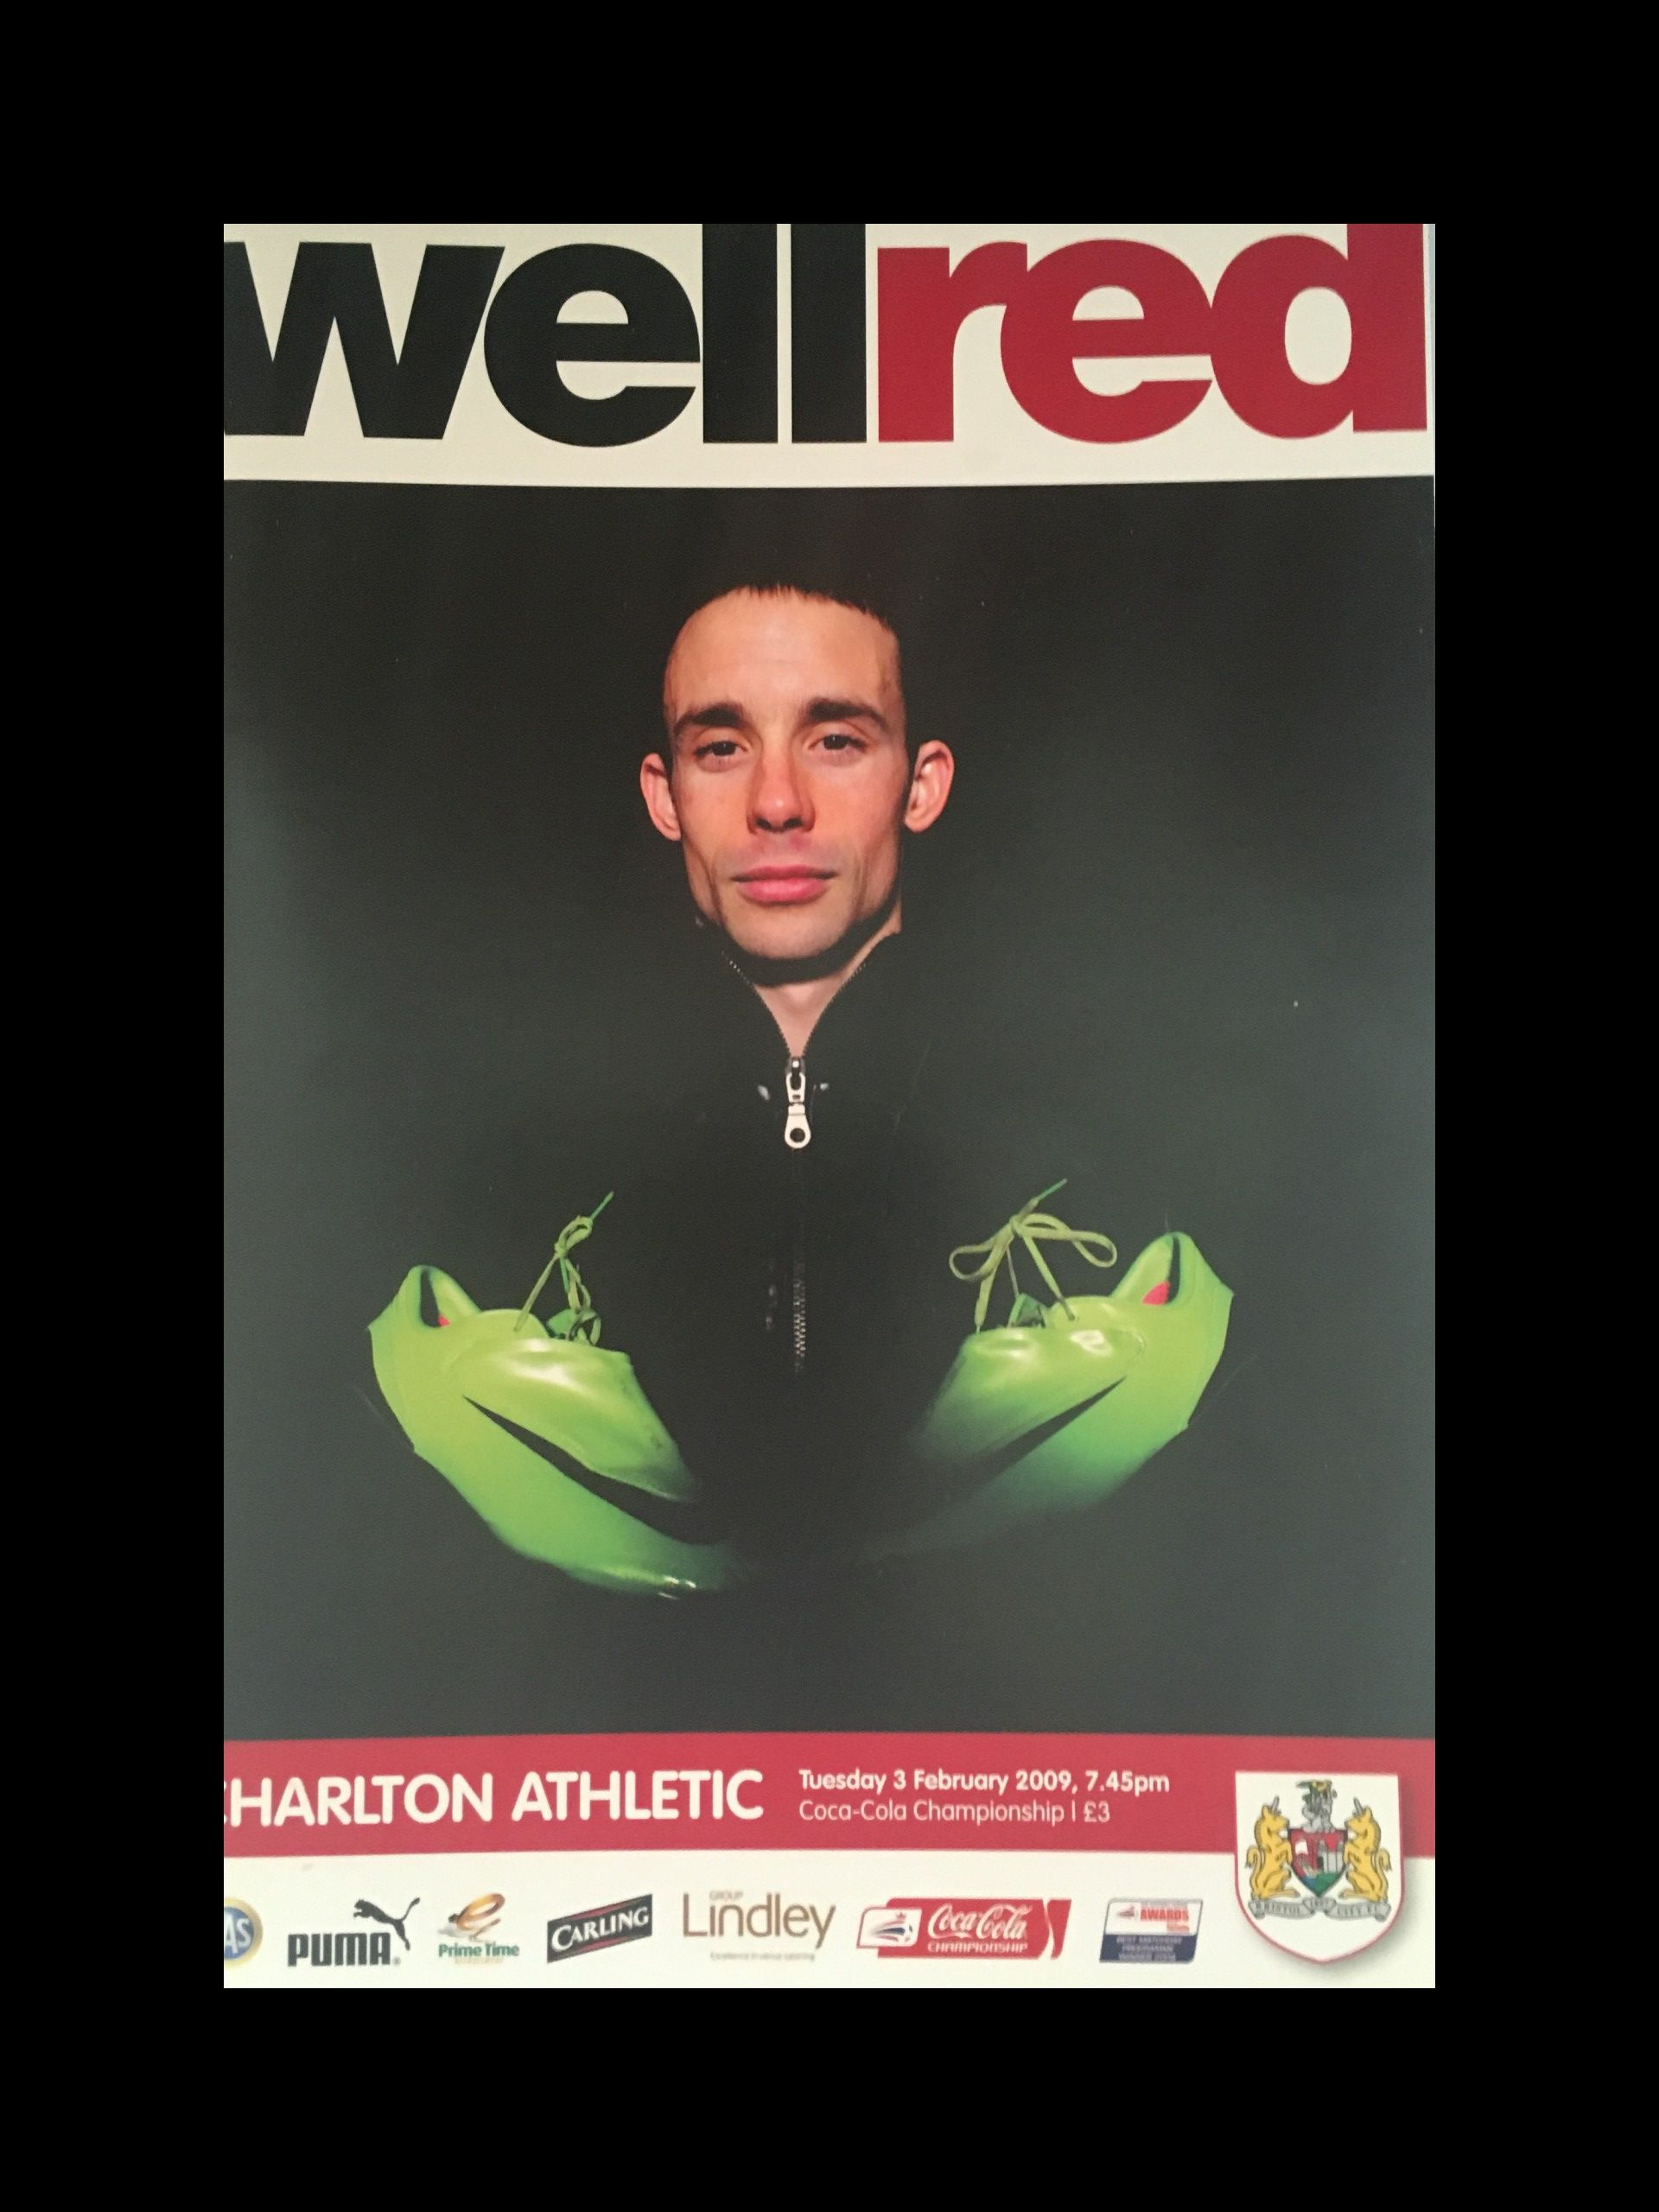 Bristol City v Charlton Athletic 03-02-2009 Programme